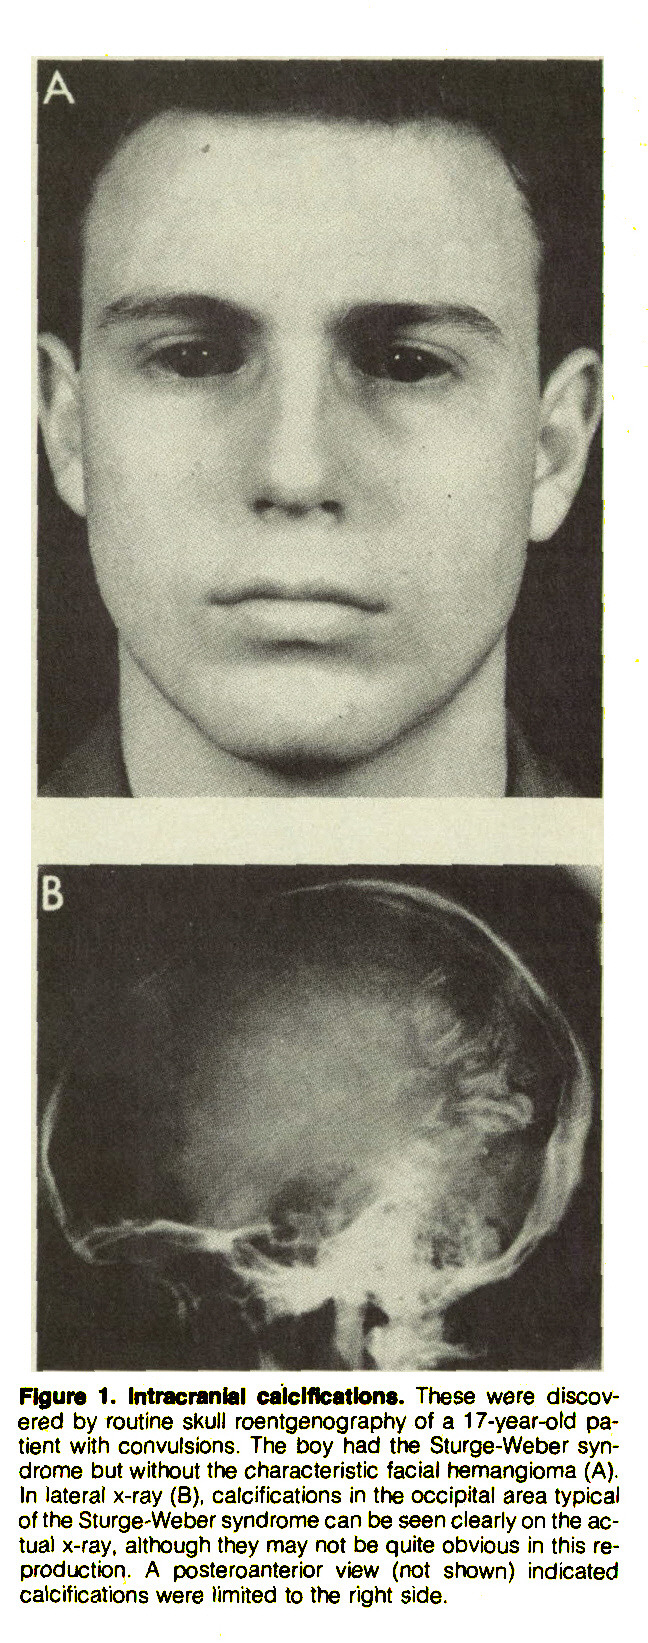 Figure 1. Intracranial calcifications. These were discovered by routine skull roentgenography of a 17-year-old patient with convulsions. The boy had the Sturge-Weber syndrome but without the characteristic facial hemangioma (A). In lateral x-ray (B), calcifications in the occipital area typical of the Sturge-Weber syndrome can be seen clearly on the actual x-ray, although they may not be quite obvious in this reproduction. A poste roanterior view (not shown) indicated calcifications were limited to the right side.